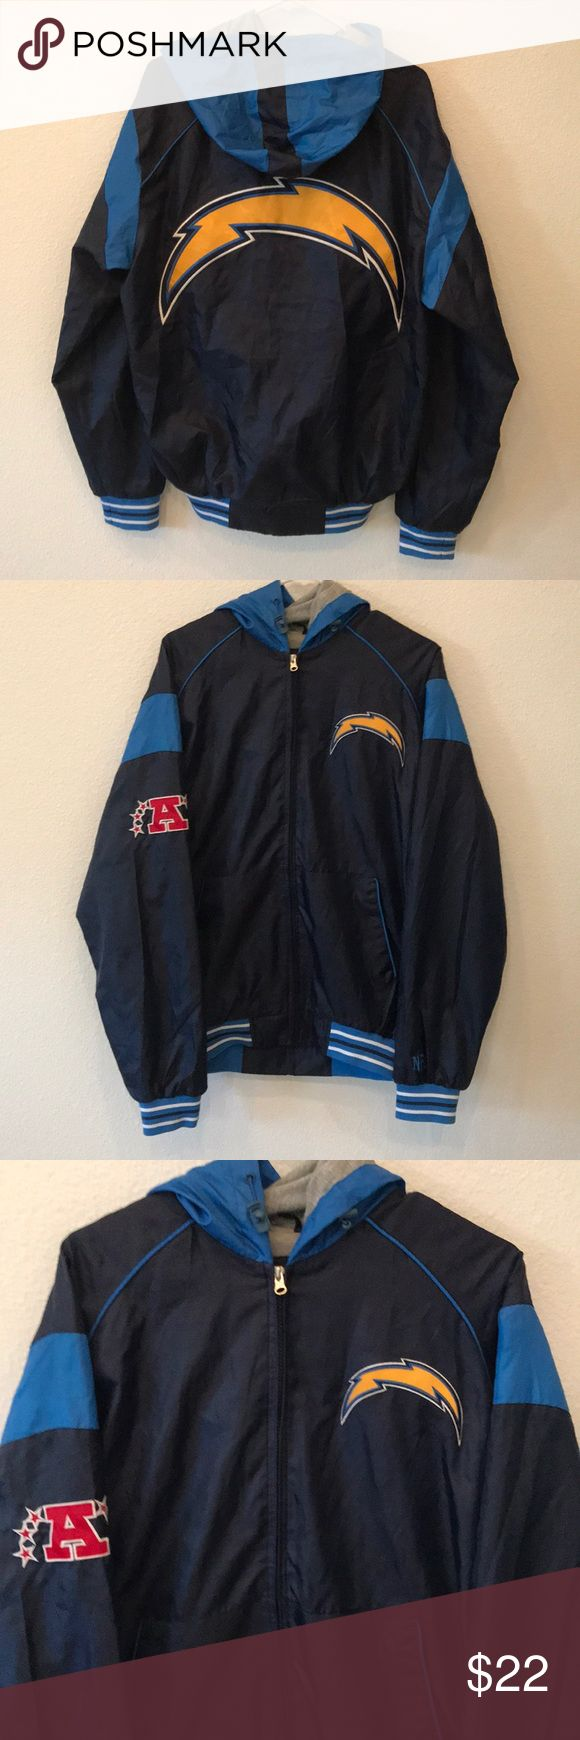 NFL Los Angles Chargers Zip Up Jacket Size M NFL Los Angeles Chargers Zip Up Jacket Size Medium, Used a couple of times. 🎄WILL SHIP IN ONE DAY🎄All bundles of 2 or more receive 20% off. Closet full of new, used and vintage Vans, Skate and surf companies, jewelry, phone cases, shoes and more. NFL Jackets & Coats